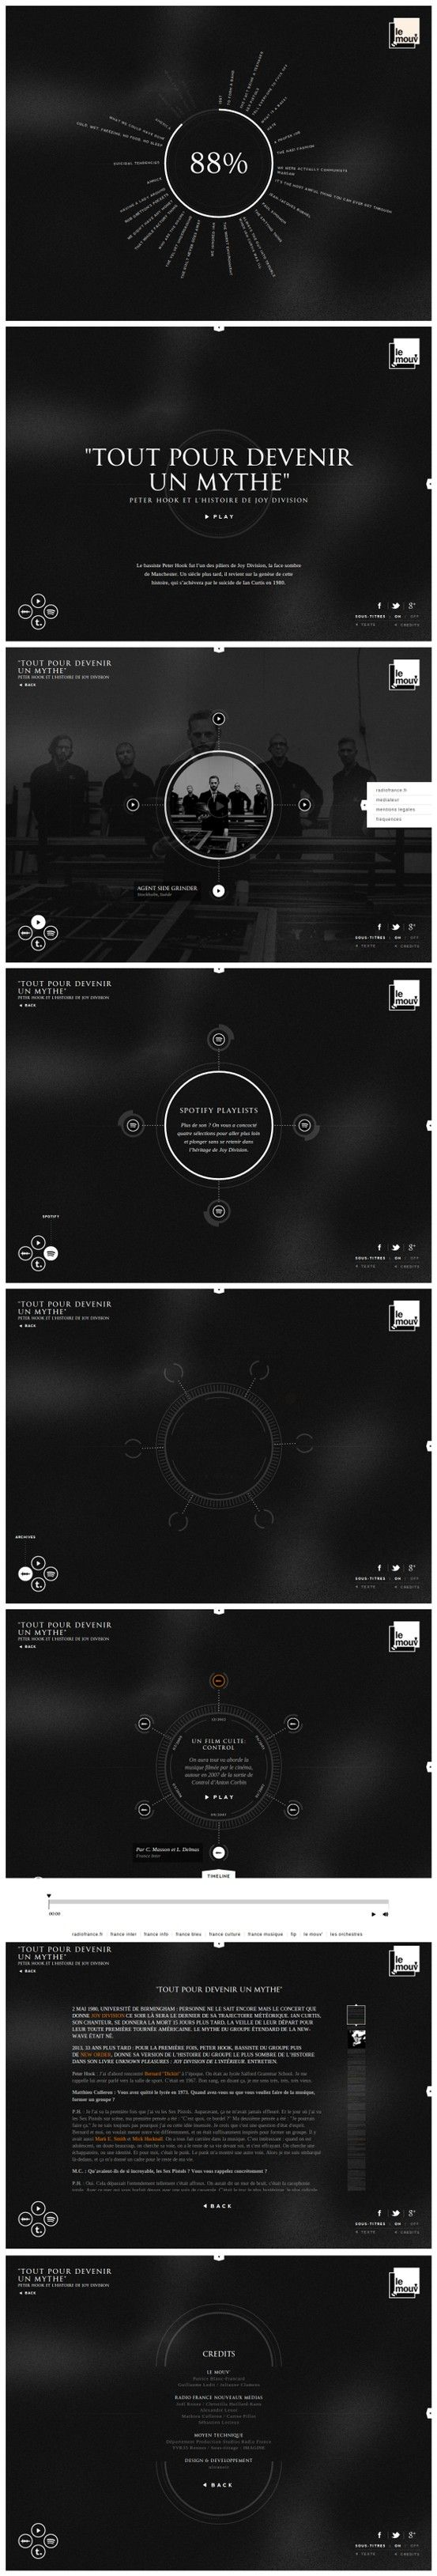 Joy Division 23 May 2013 http://www.awwwards.com/web-design-awards/joy-division #webdesign #inspiration #UI #Clean #Minimal #Typography #Fullscreen #Graphicdesign #Black